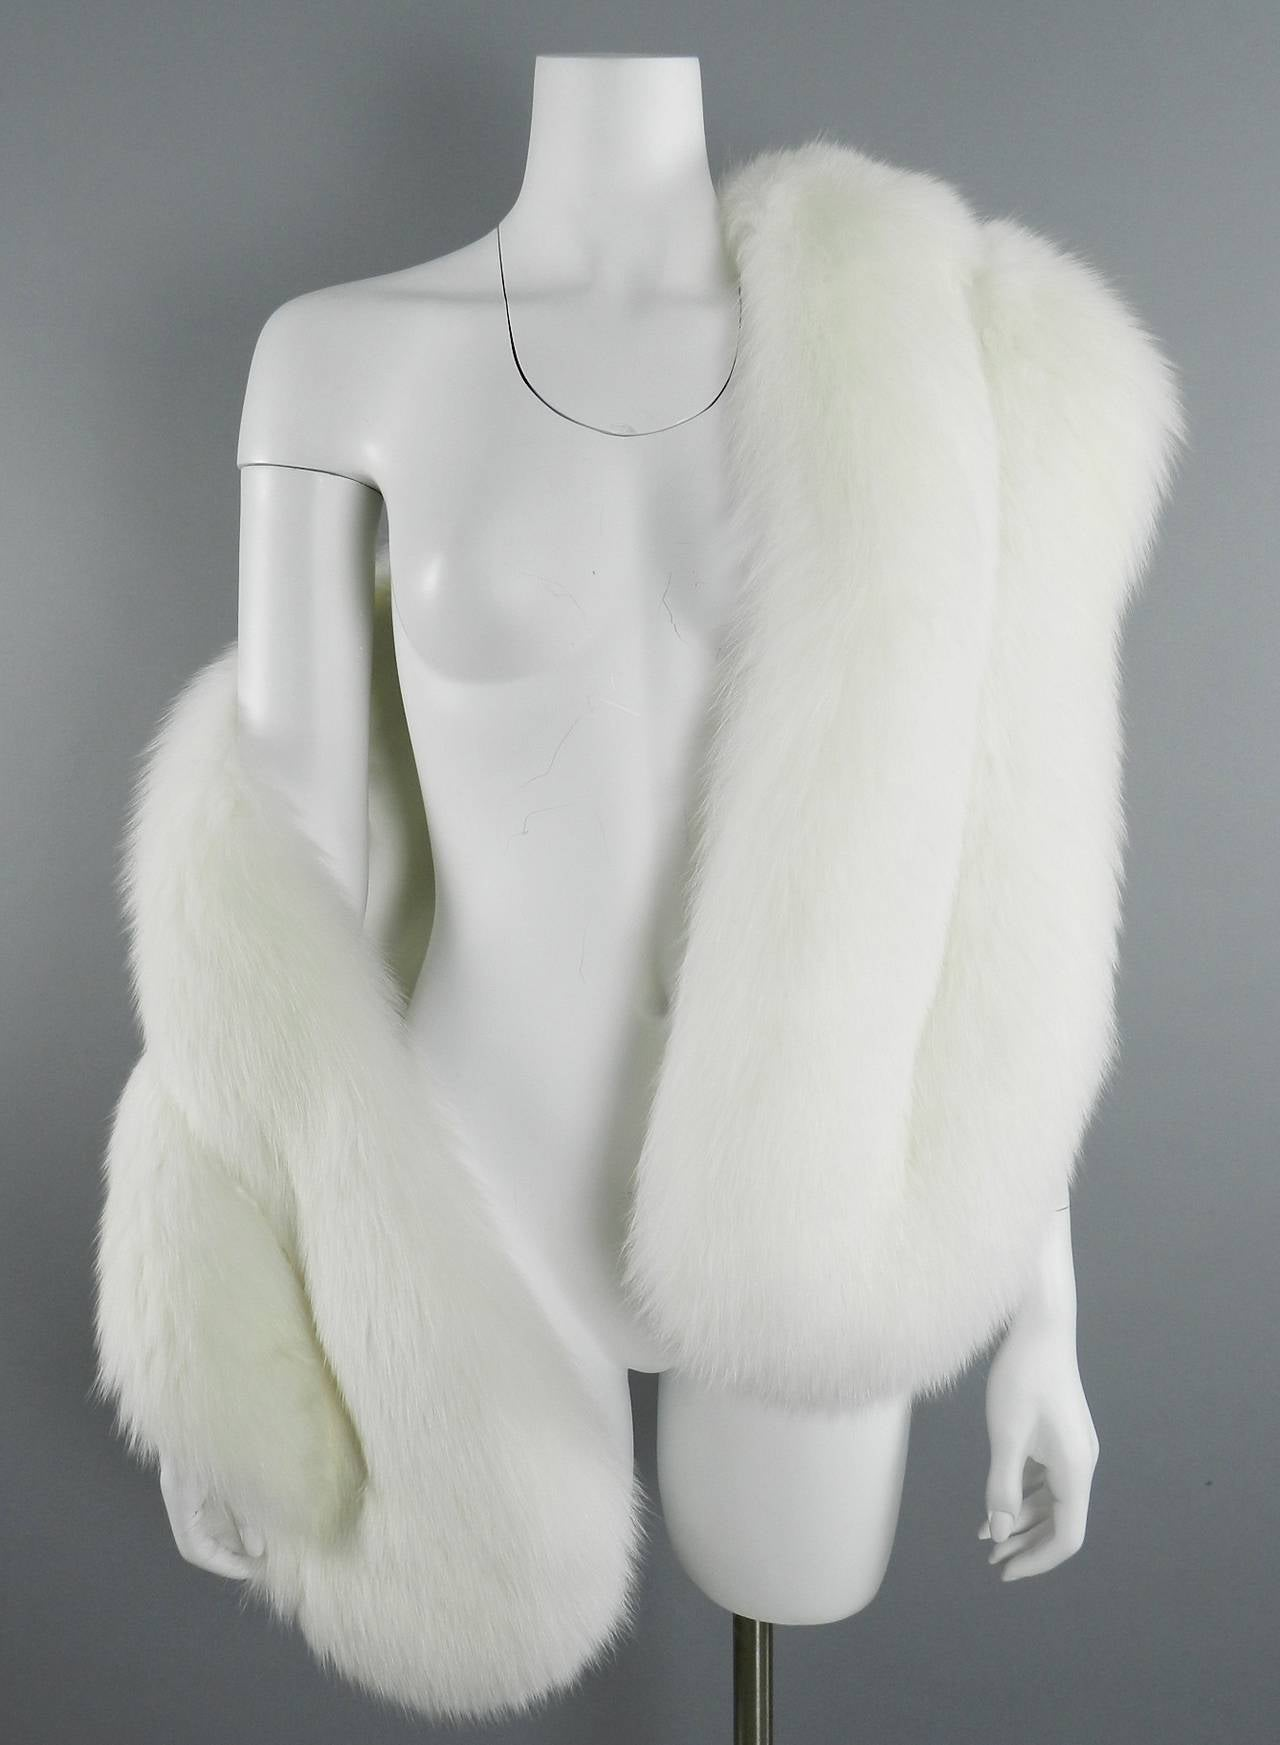 White Fur Stole >> Prada White Fox Fur Stole Scarf At 1stdibs